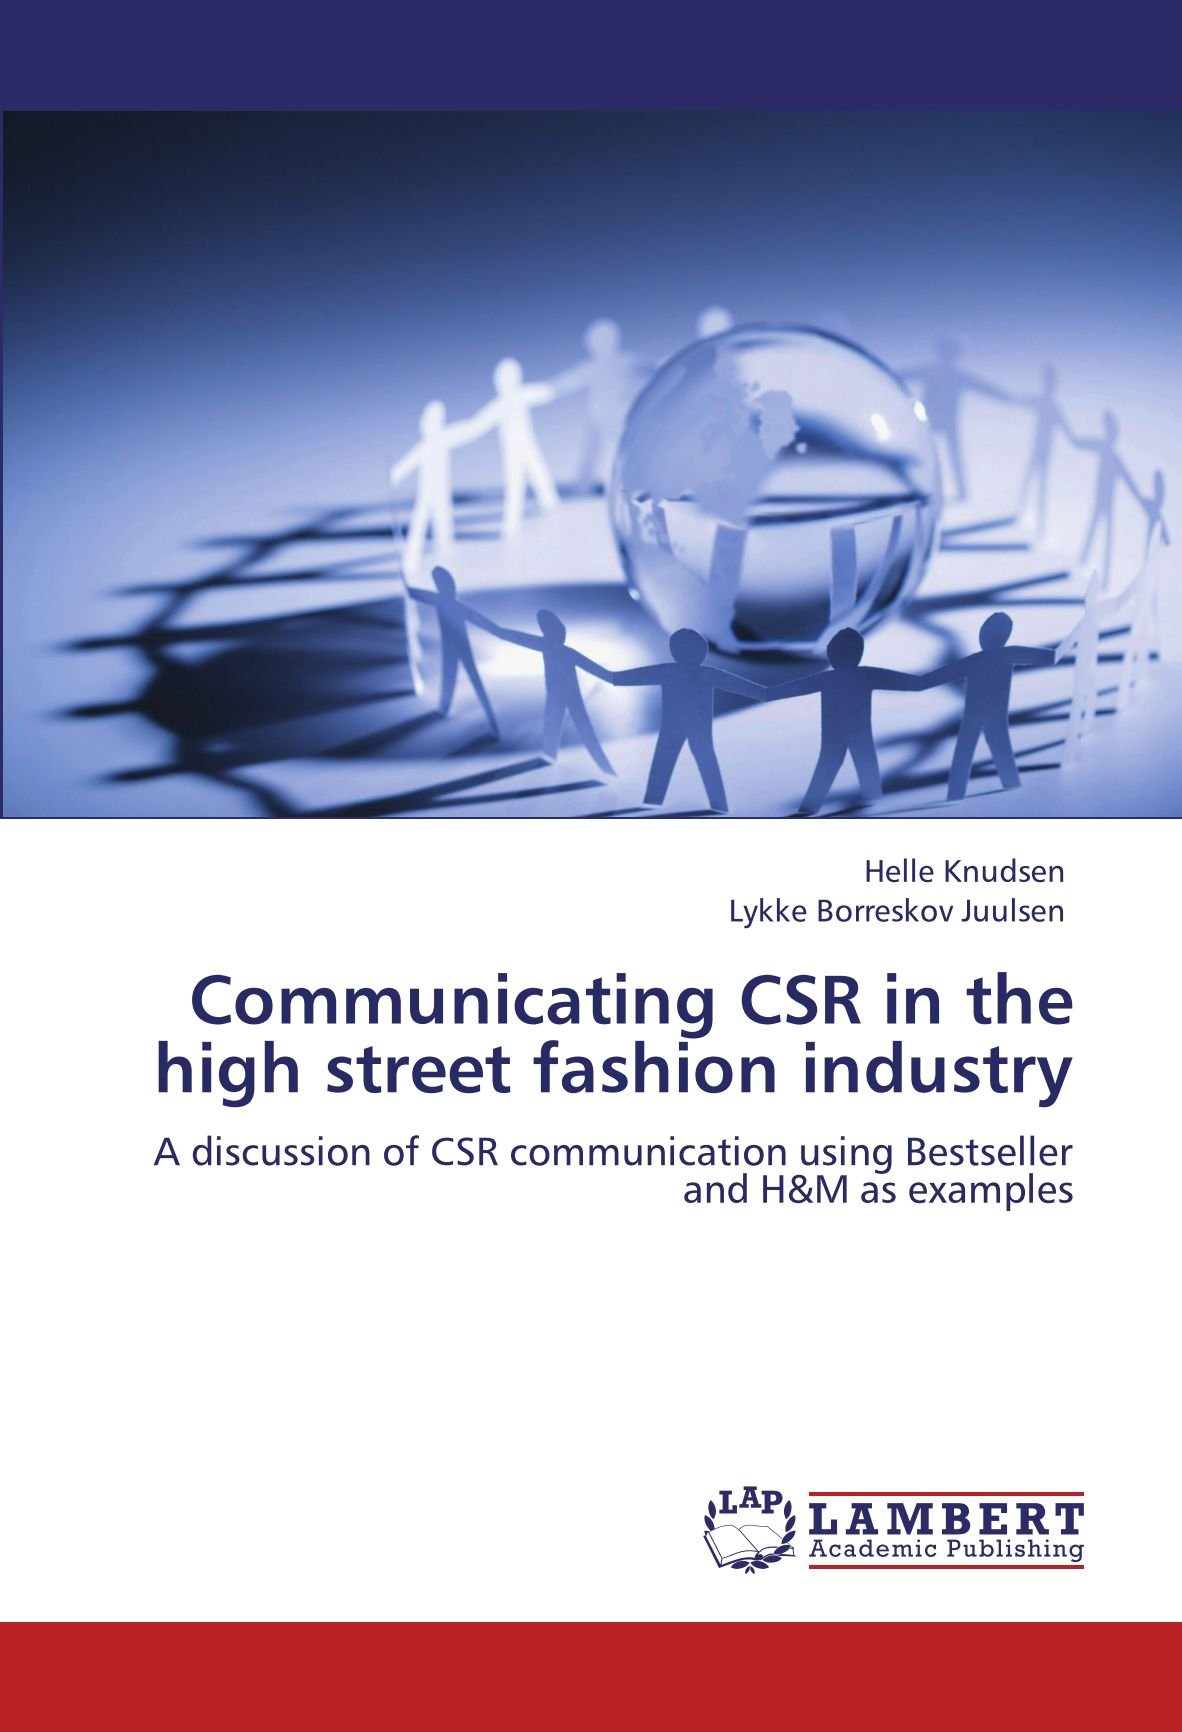 Communicating CSR in the high street fashion industry: A discussion of CSR communication using Bestseller and H&M as examples pdf